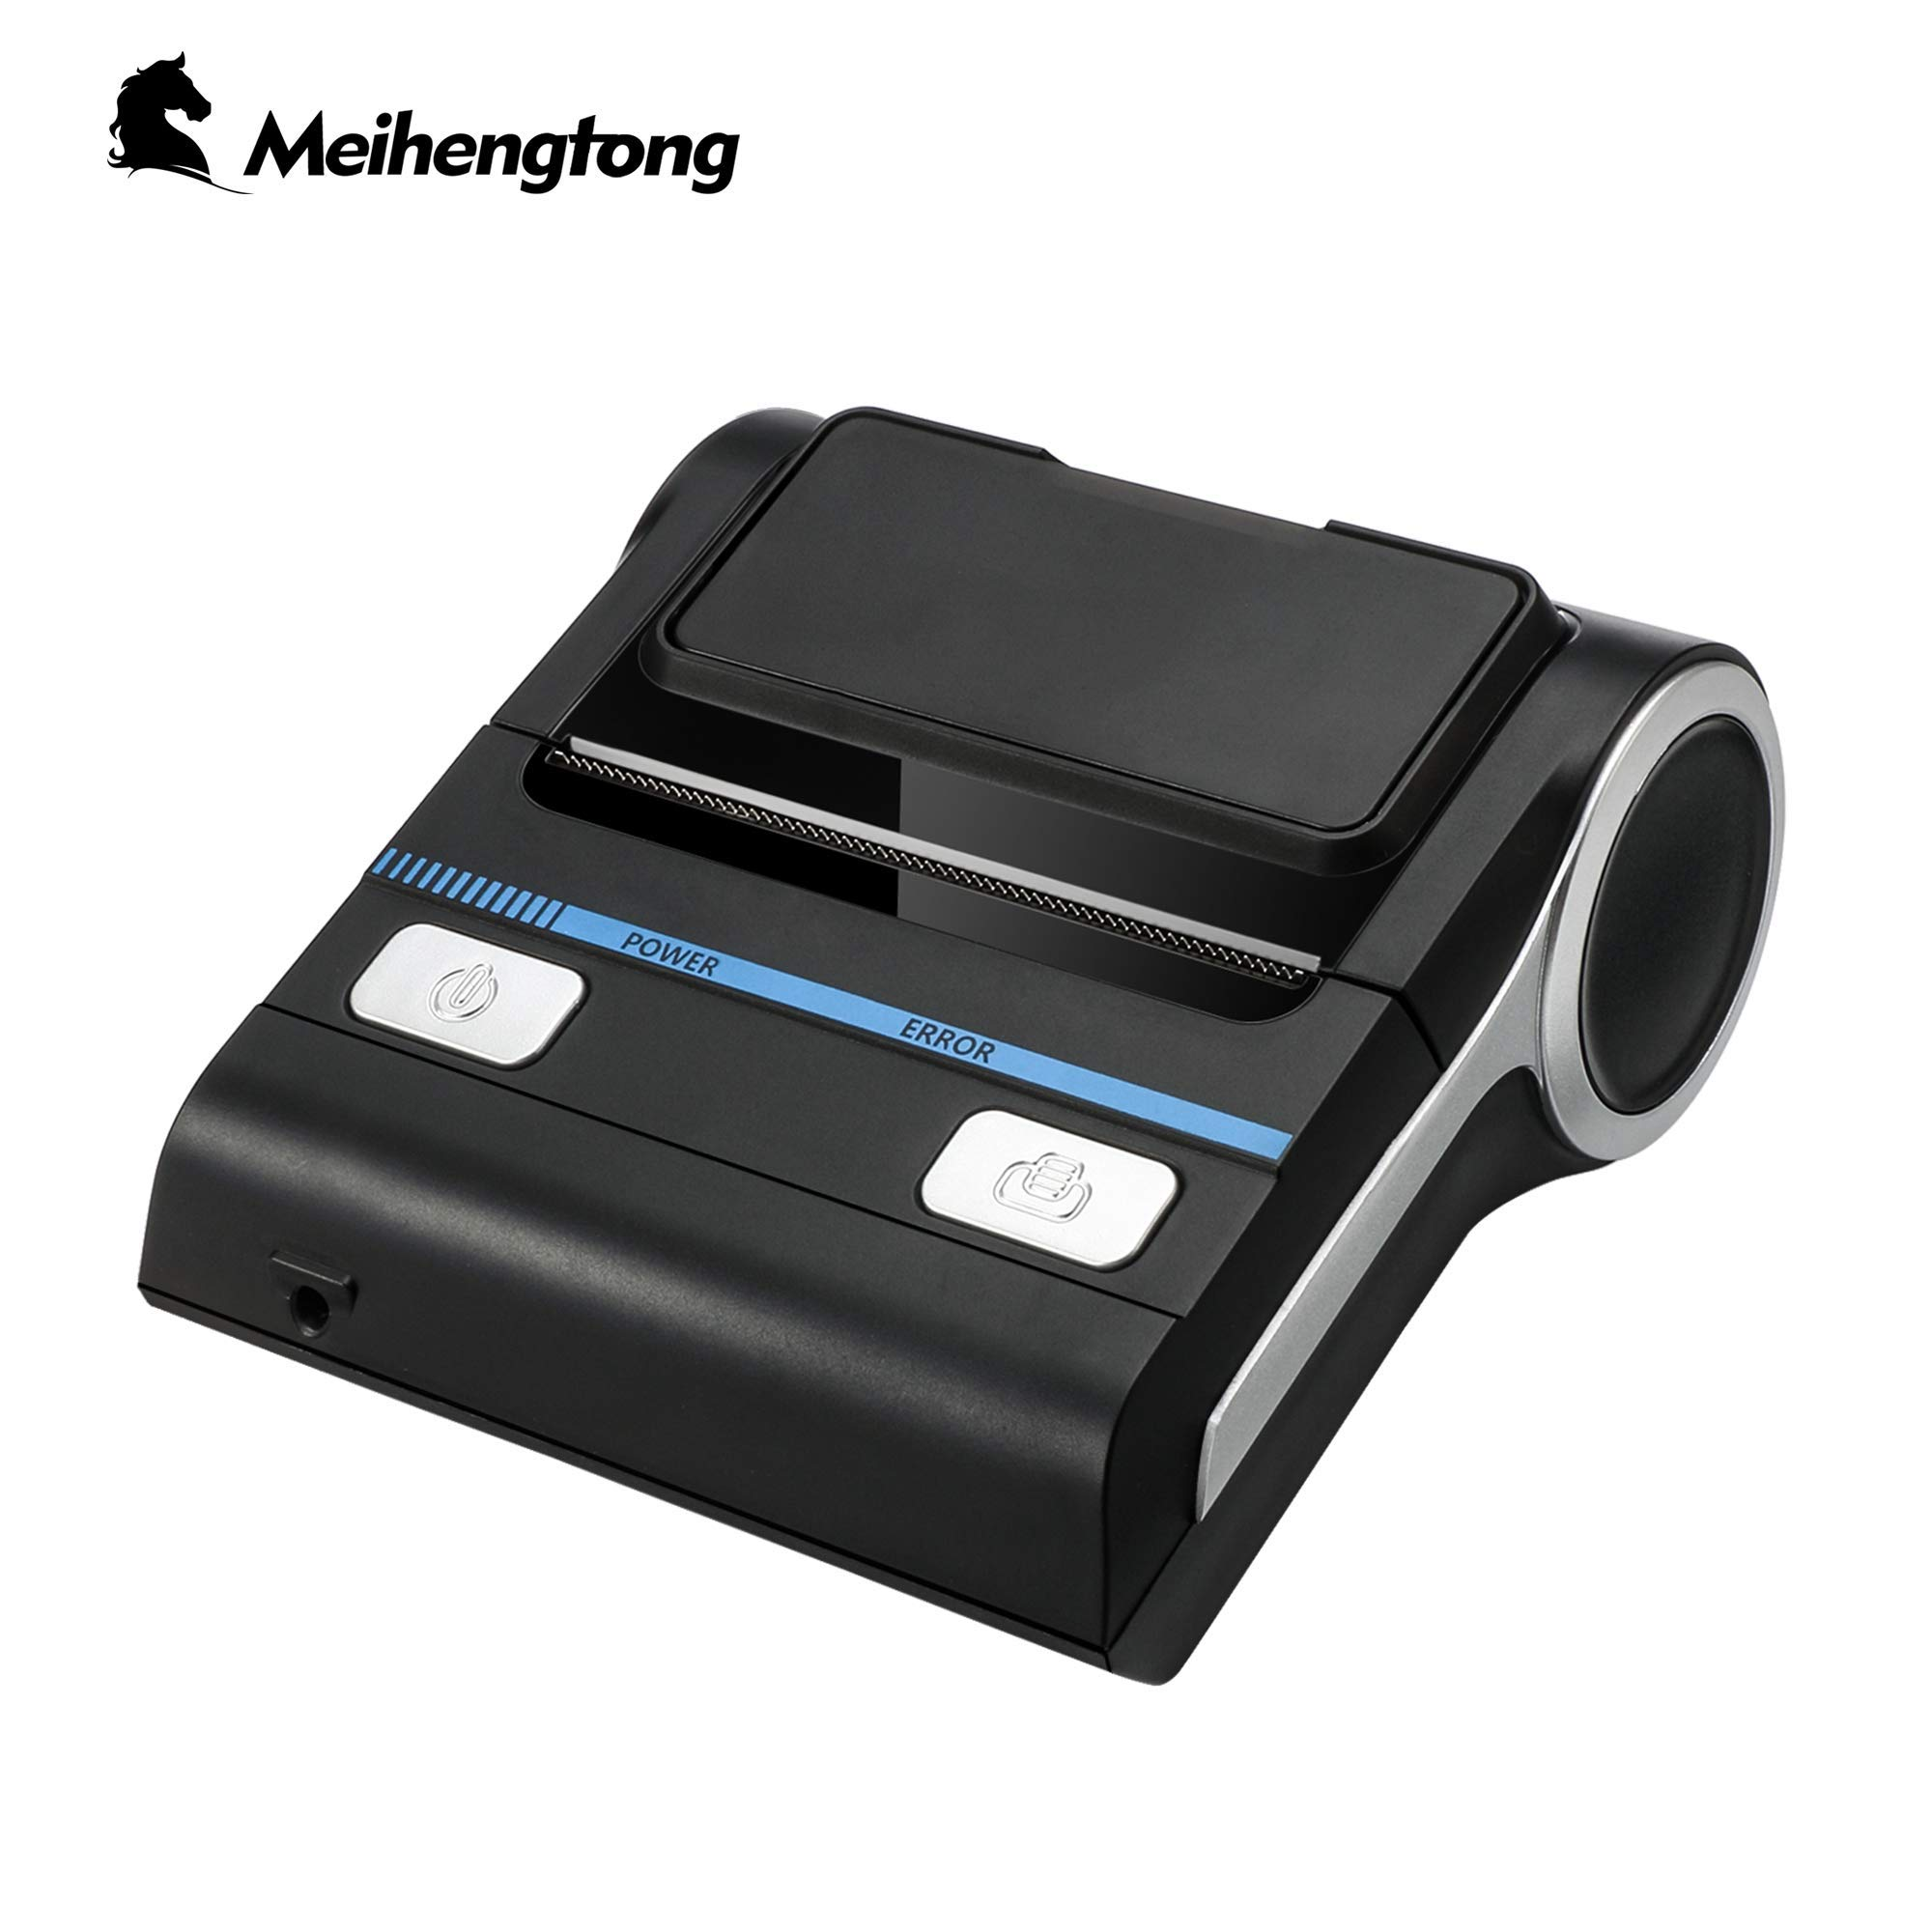 Meihengtong Bluetooth Receipt Printers Wireless Thermal Printer 80mm Compatible with Android/iOS/Windows System ESC/POS Print Commands Set for Office and Small Business (Receipt Printer) by Meihengtong